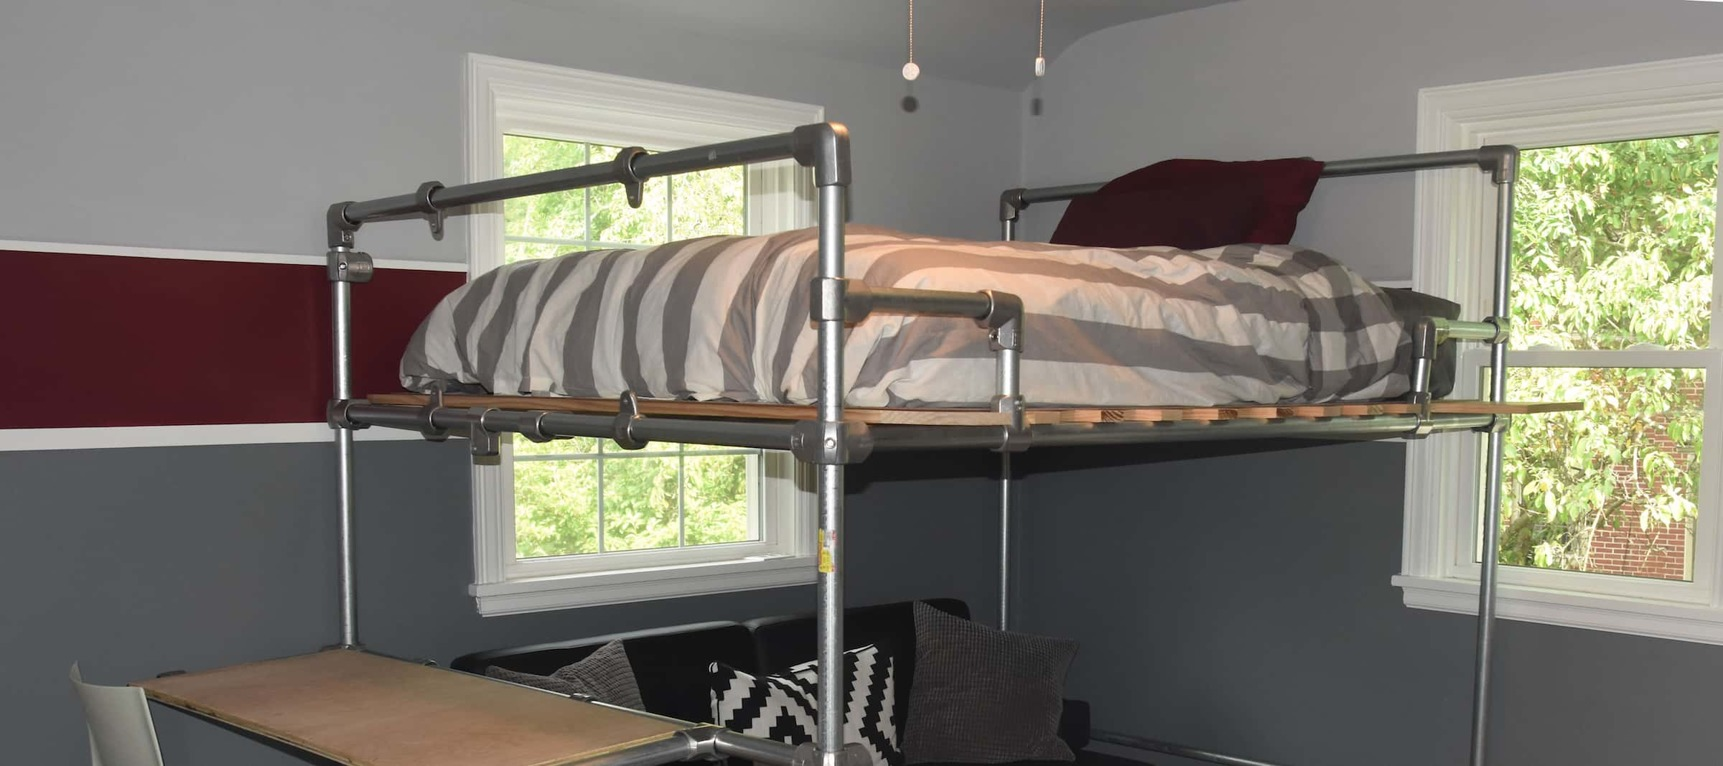 20 Diy Pipe Bed Frame Ideas And Plans Simplified Building